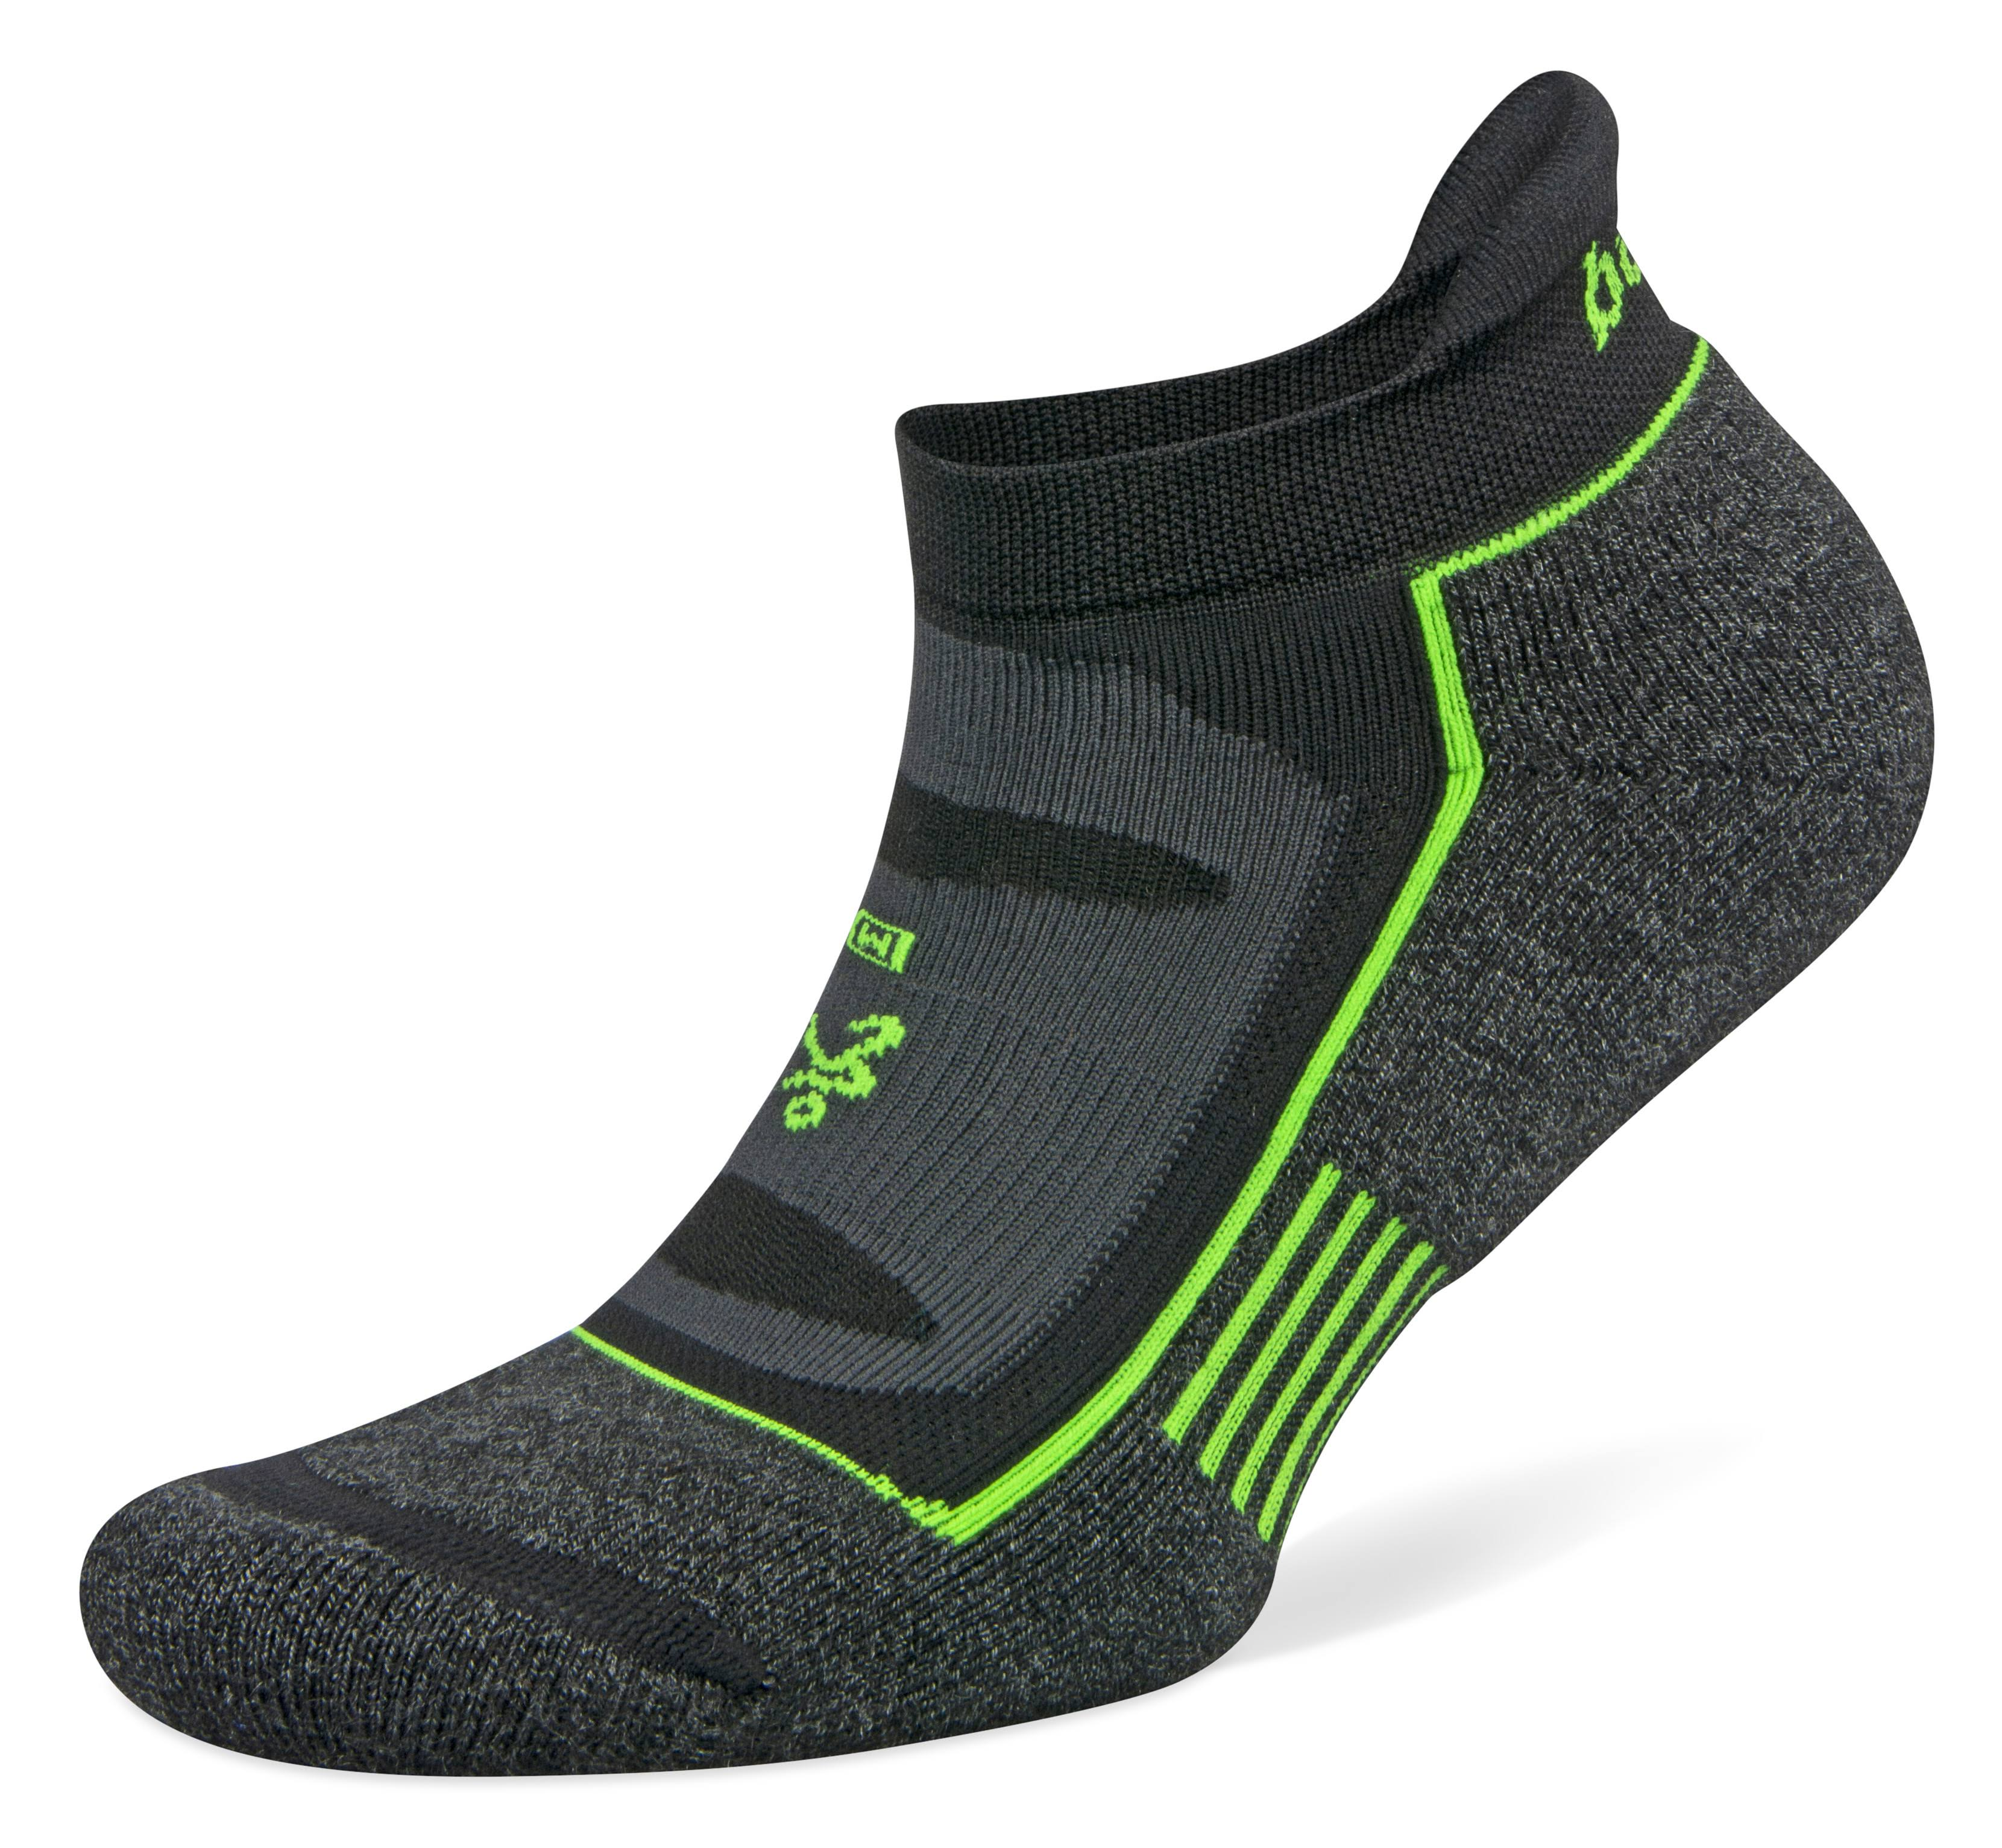 Balega Blister Resist No Show Socks - Charcoal/Black, Small